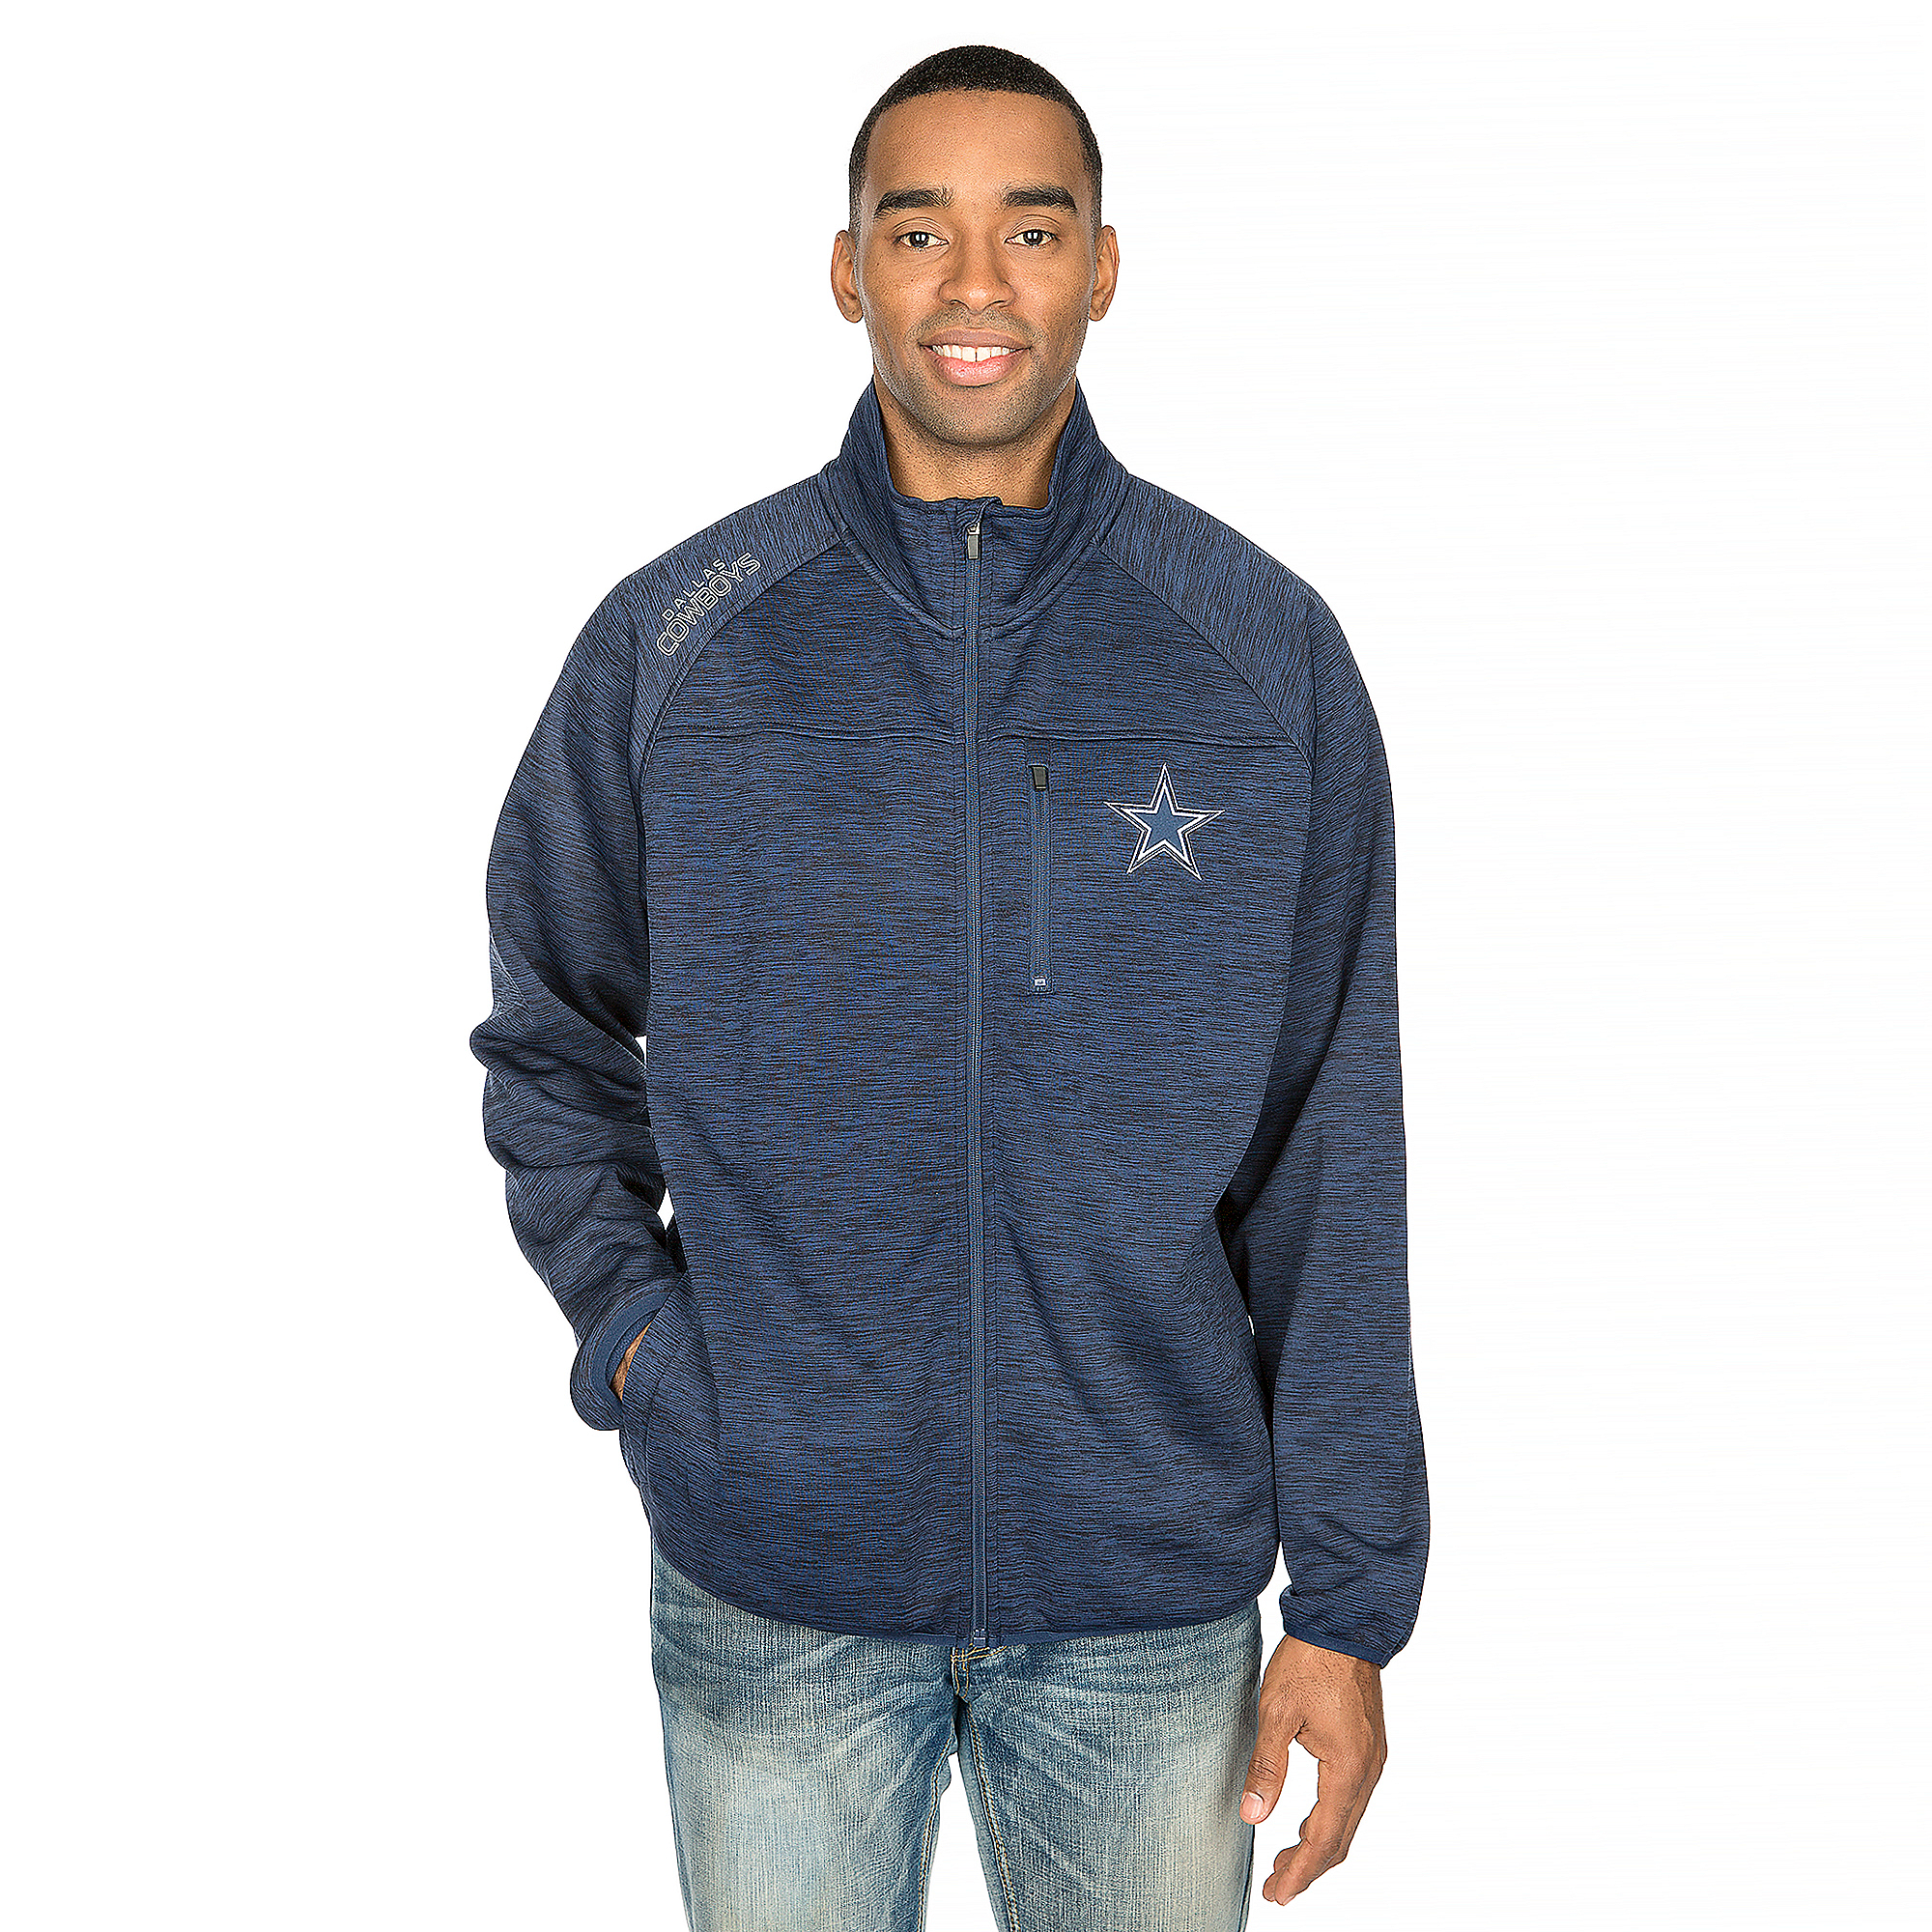 Dallas Cowboys Mindset Jacket